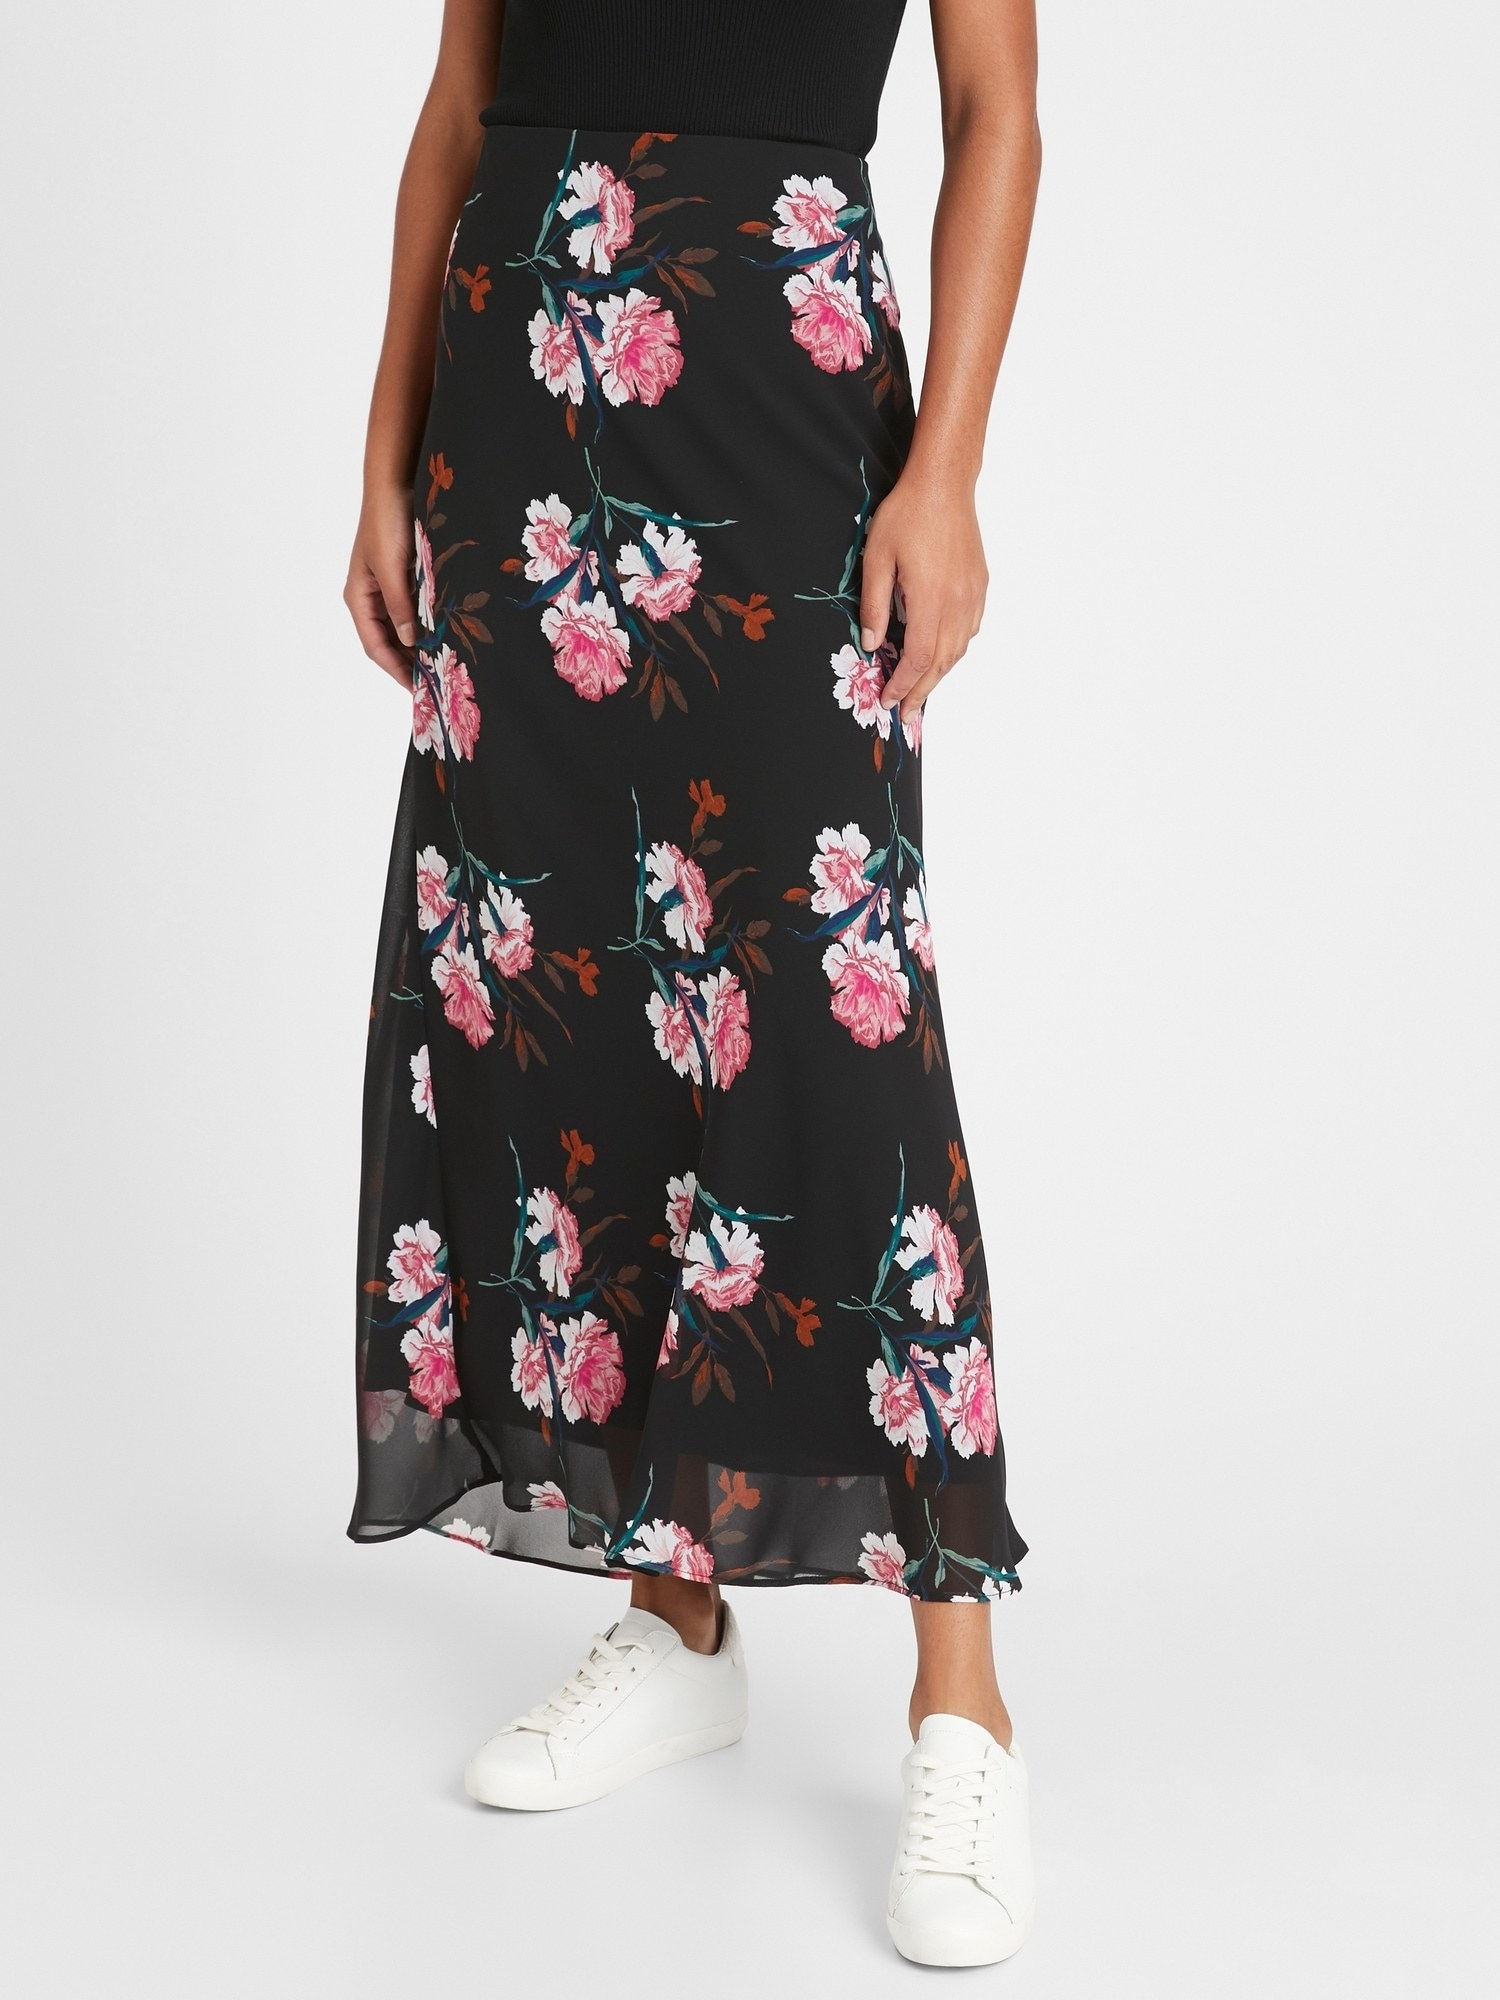 Model wearing the ankle-length maxi skirt in black with white and pink flowers all over it